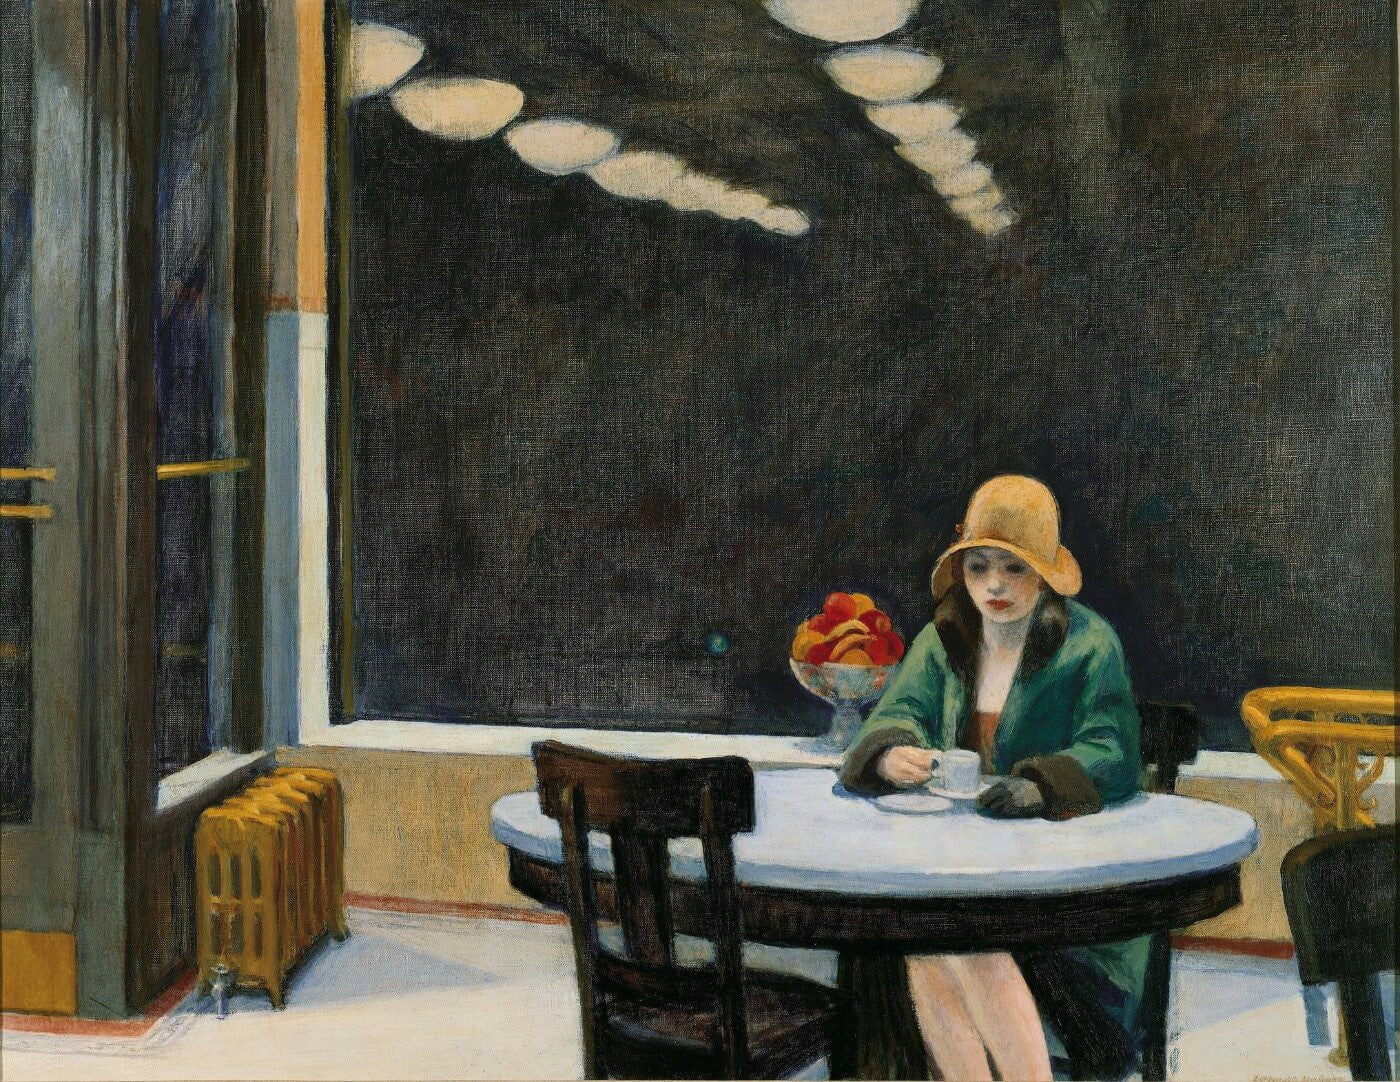 Edward Hopper Paintings | Buy Posters, Frames, Canvas, Digital Art & Large Size Prints Of The Famous Modern Master's Artworks